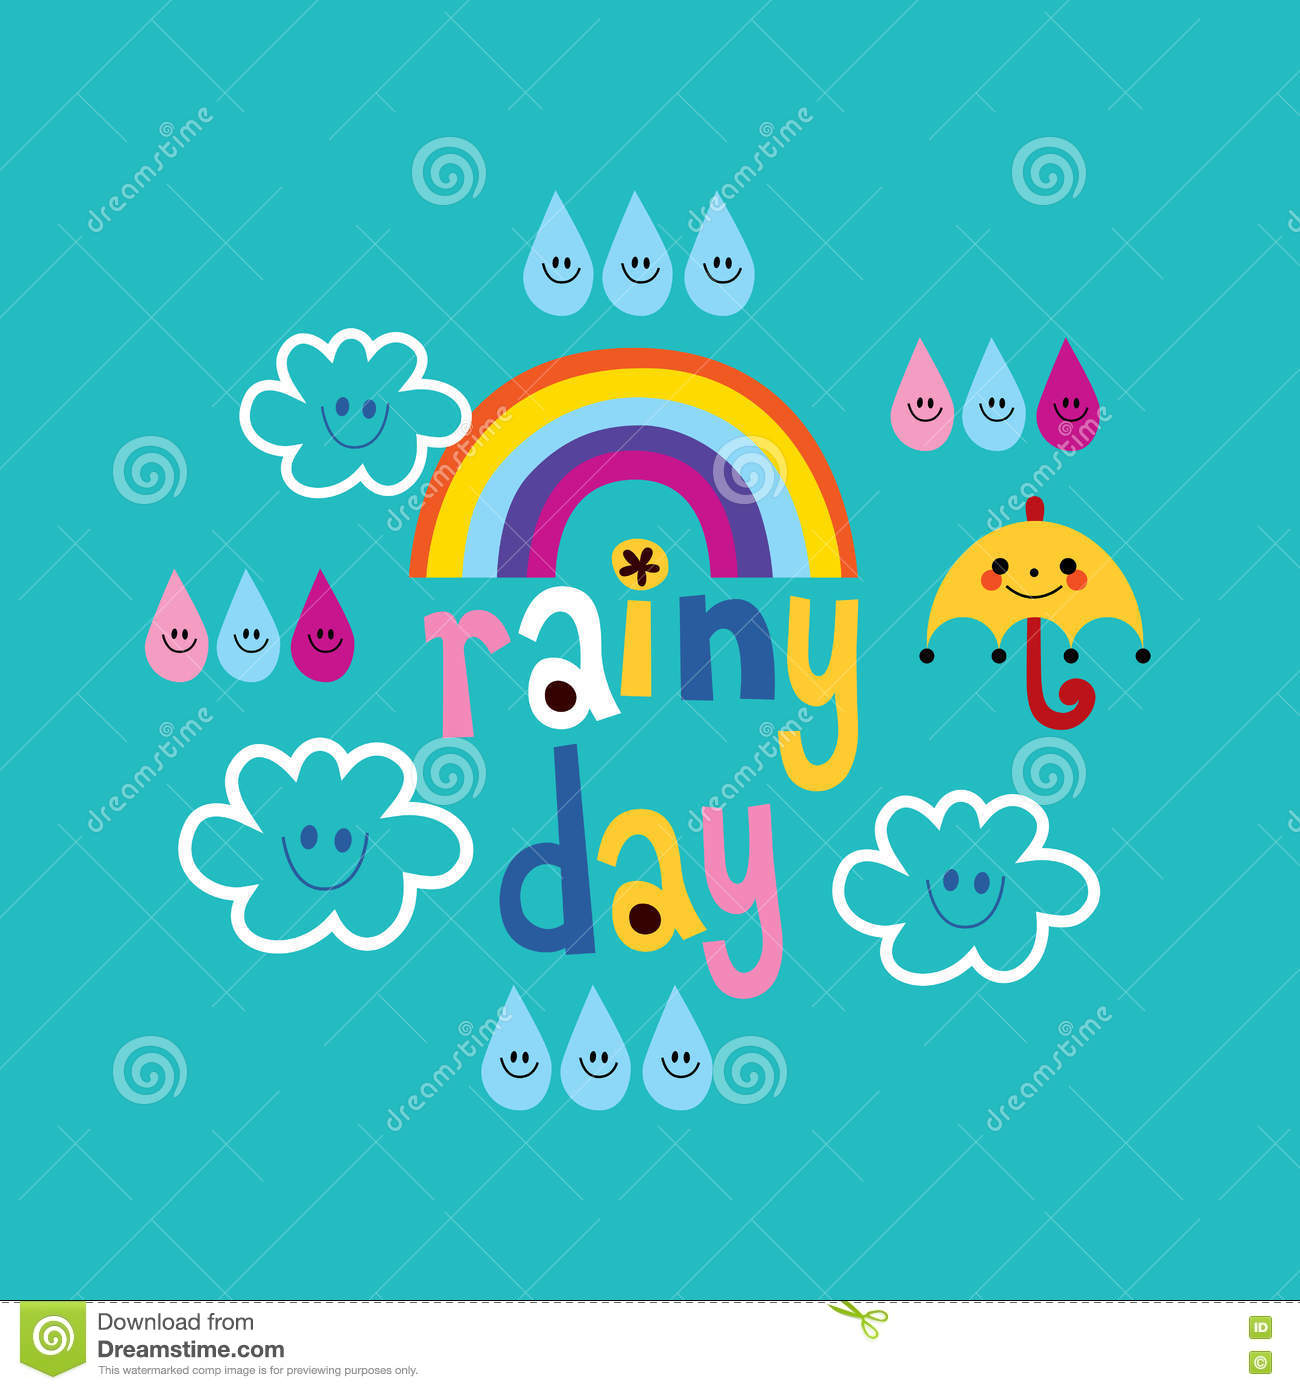 Cute Rainy Day: Rainy Day Weather Design With Cute Clouds Umbrella Rainbow